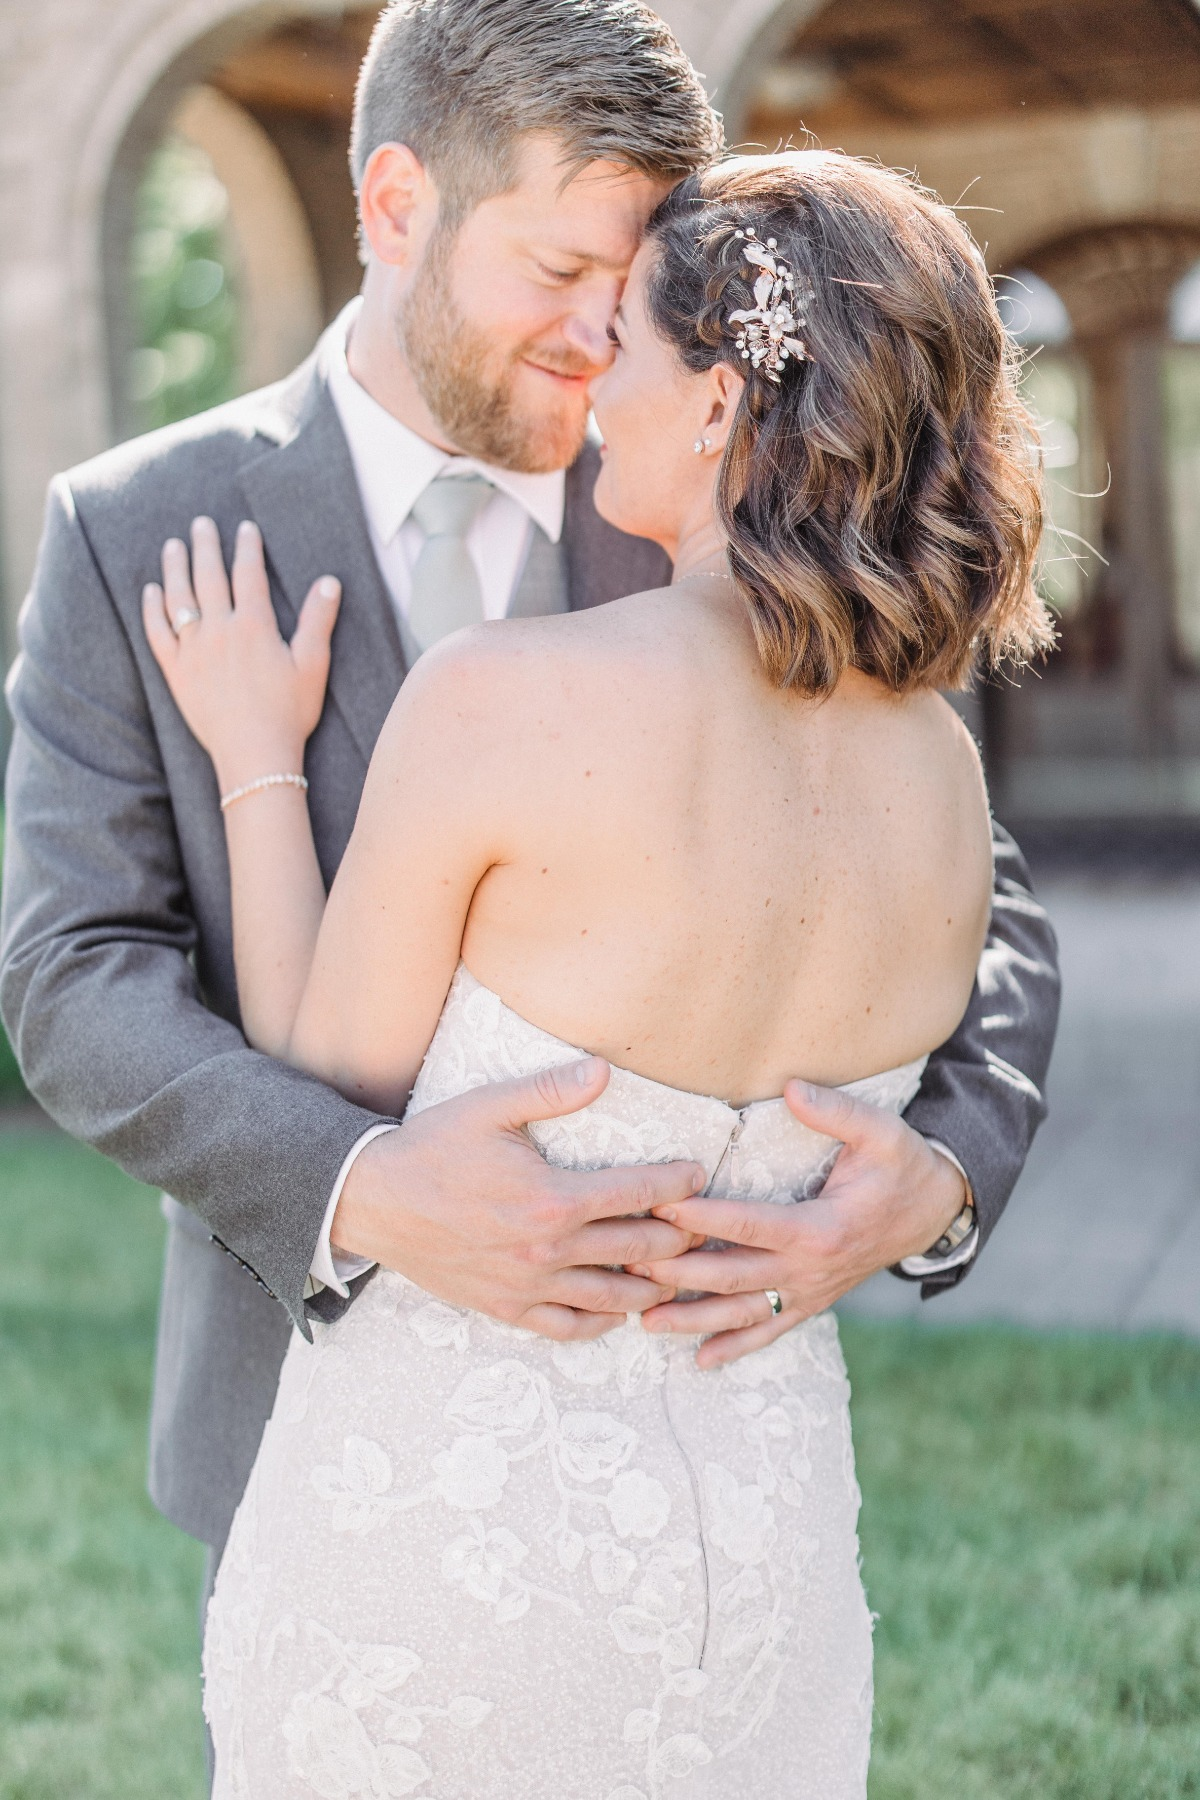 Charming Church Wedding That's All About Family